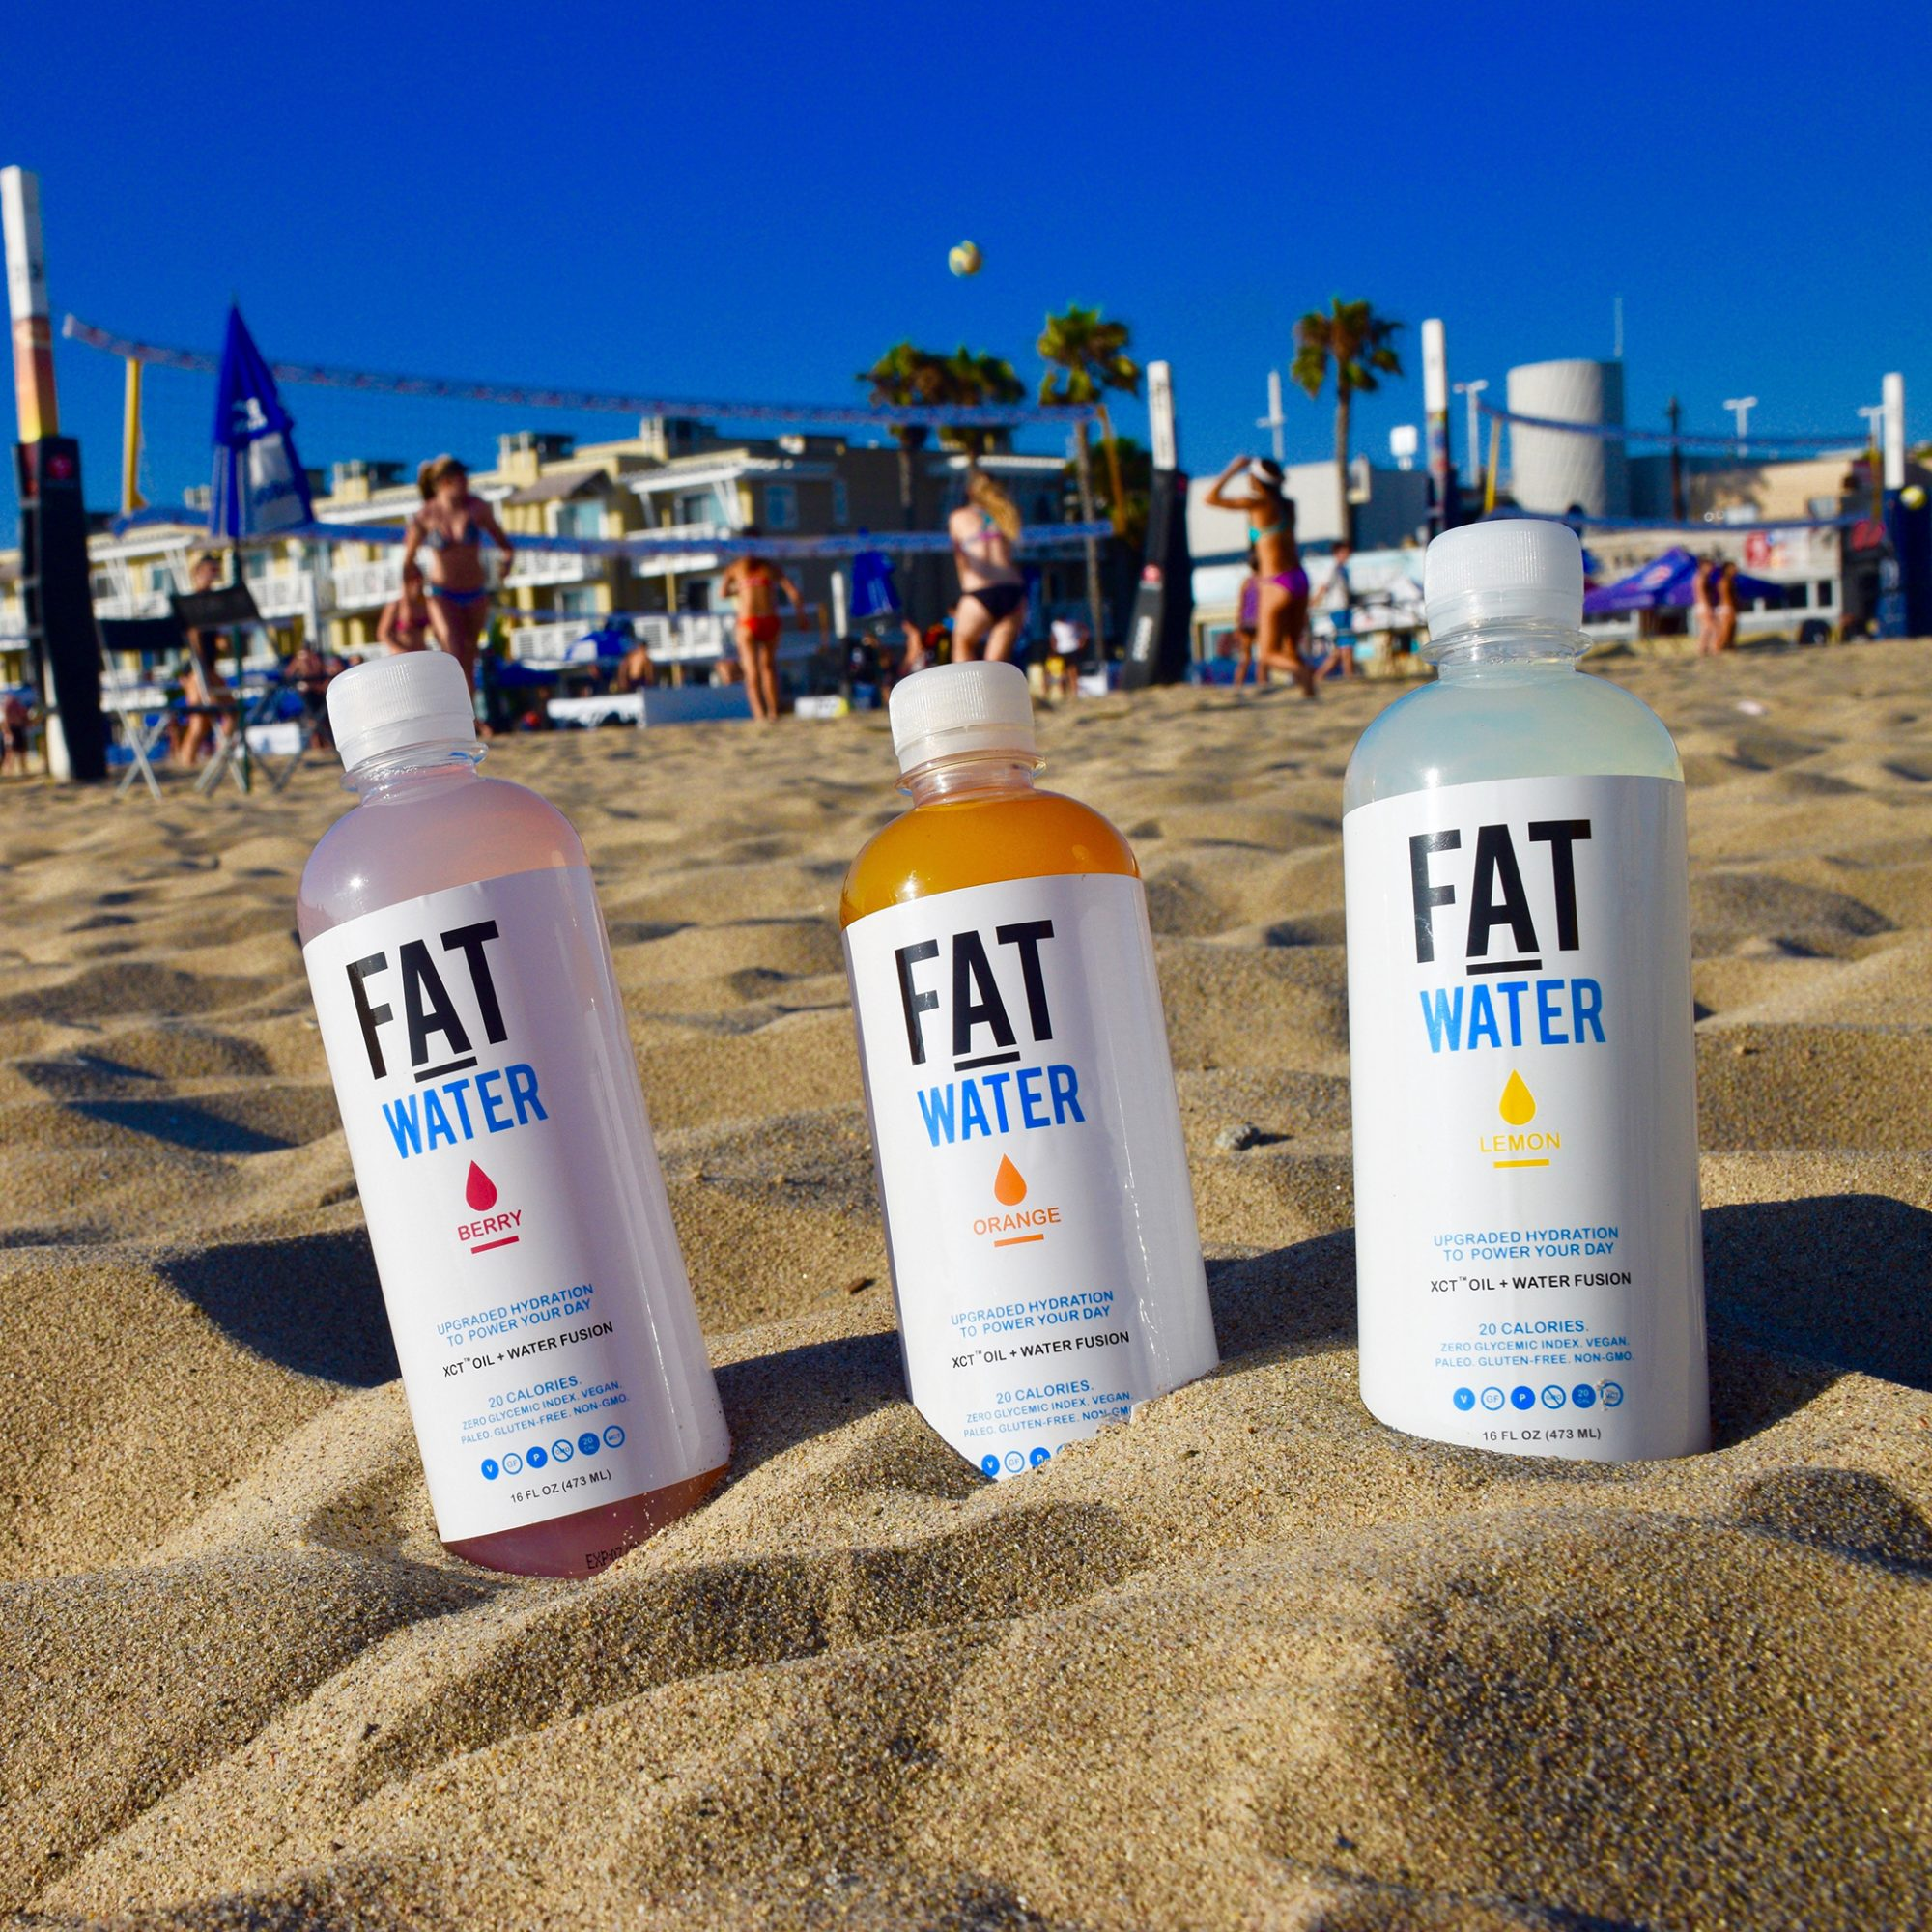 Water With Added Fat Is the New Fad Health Drink